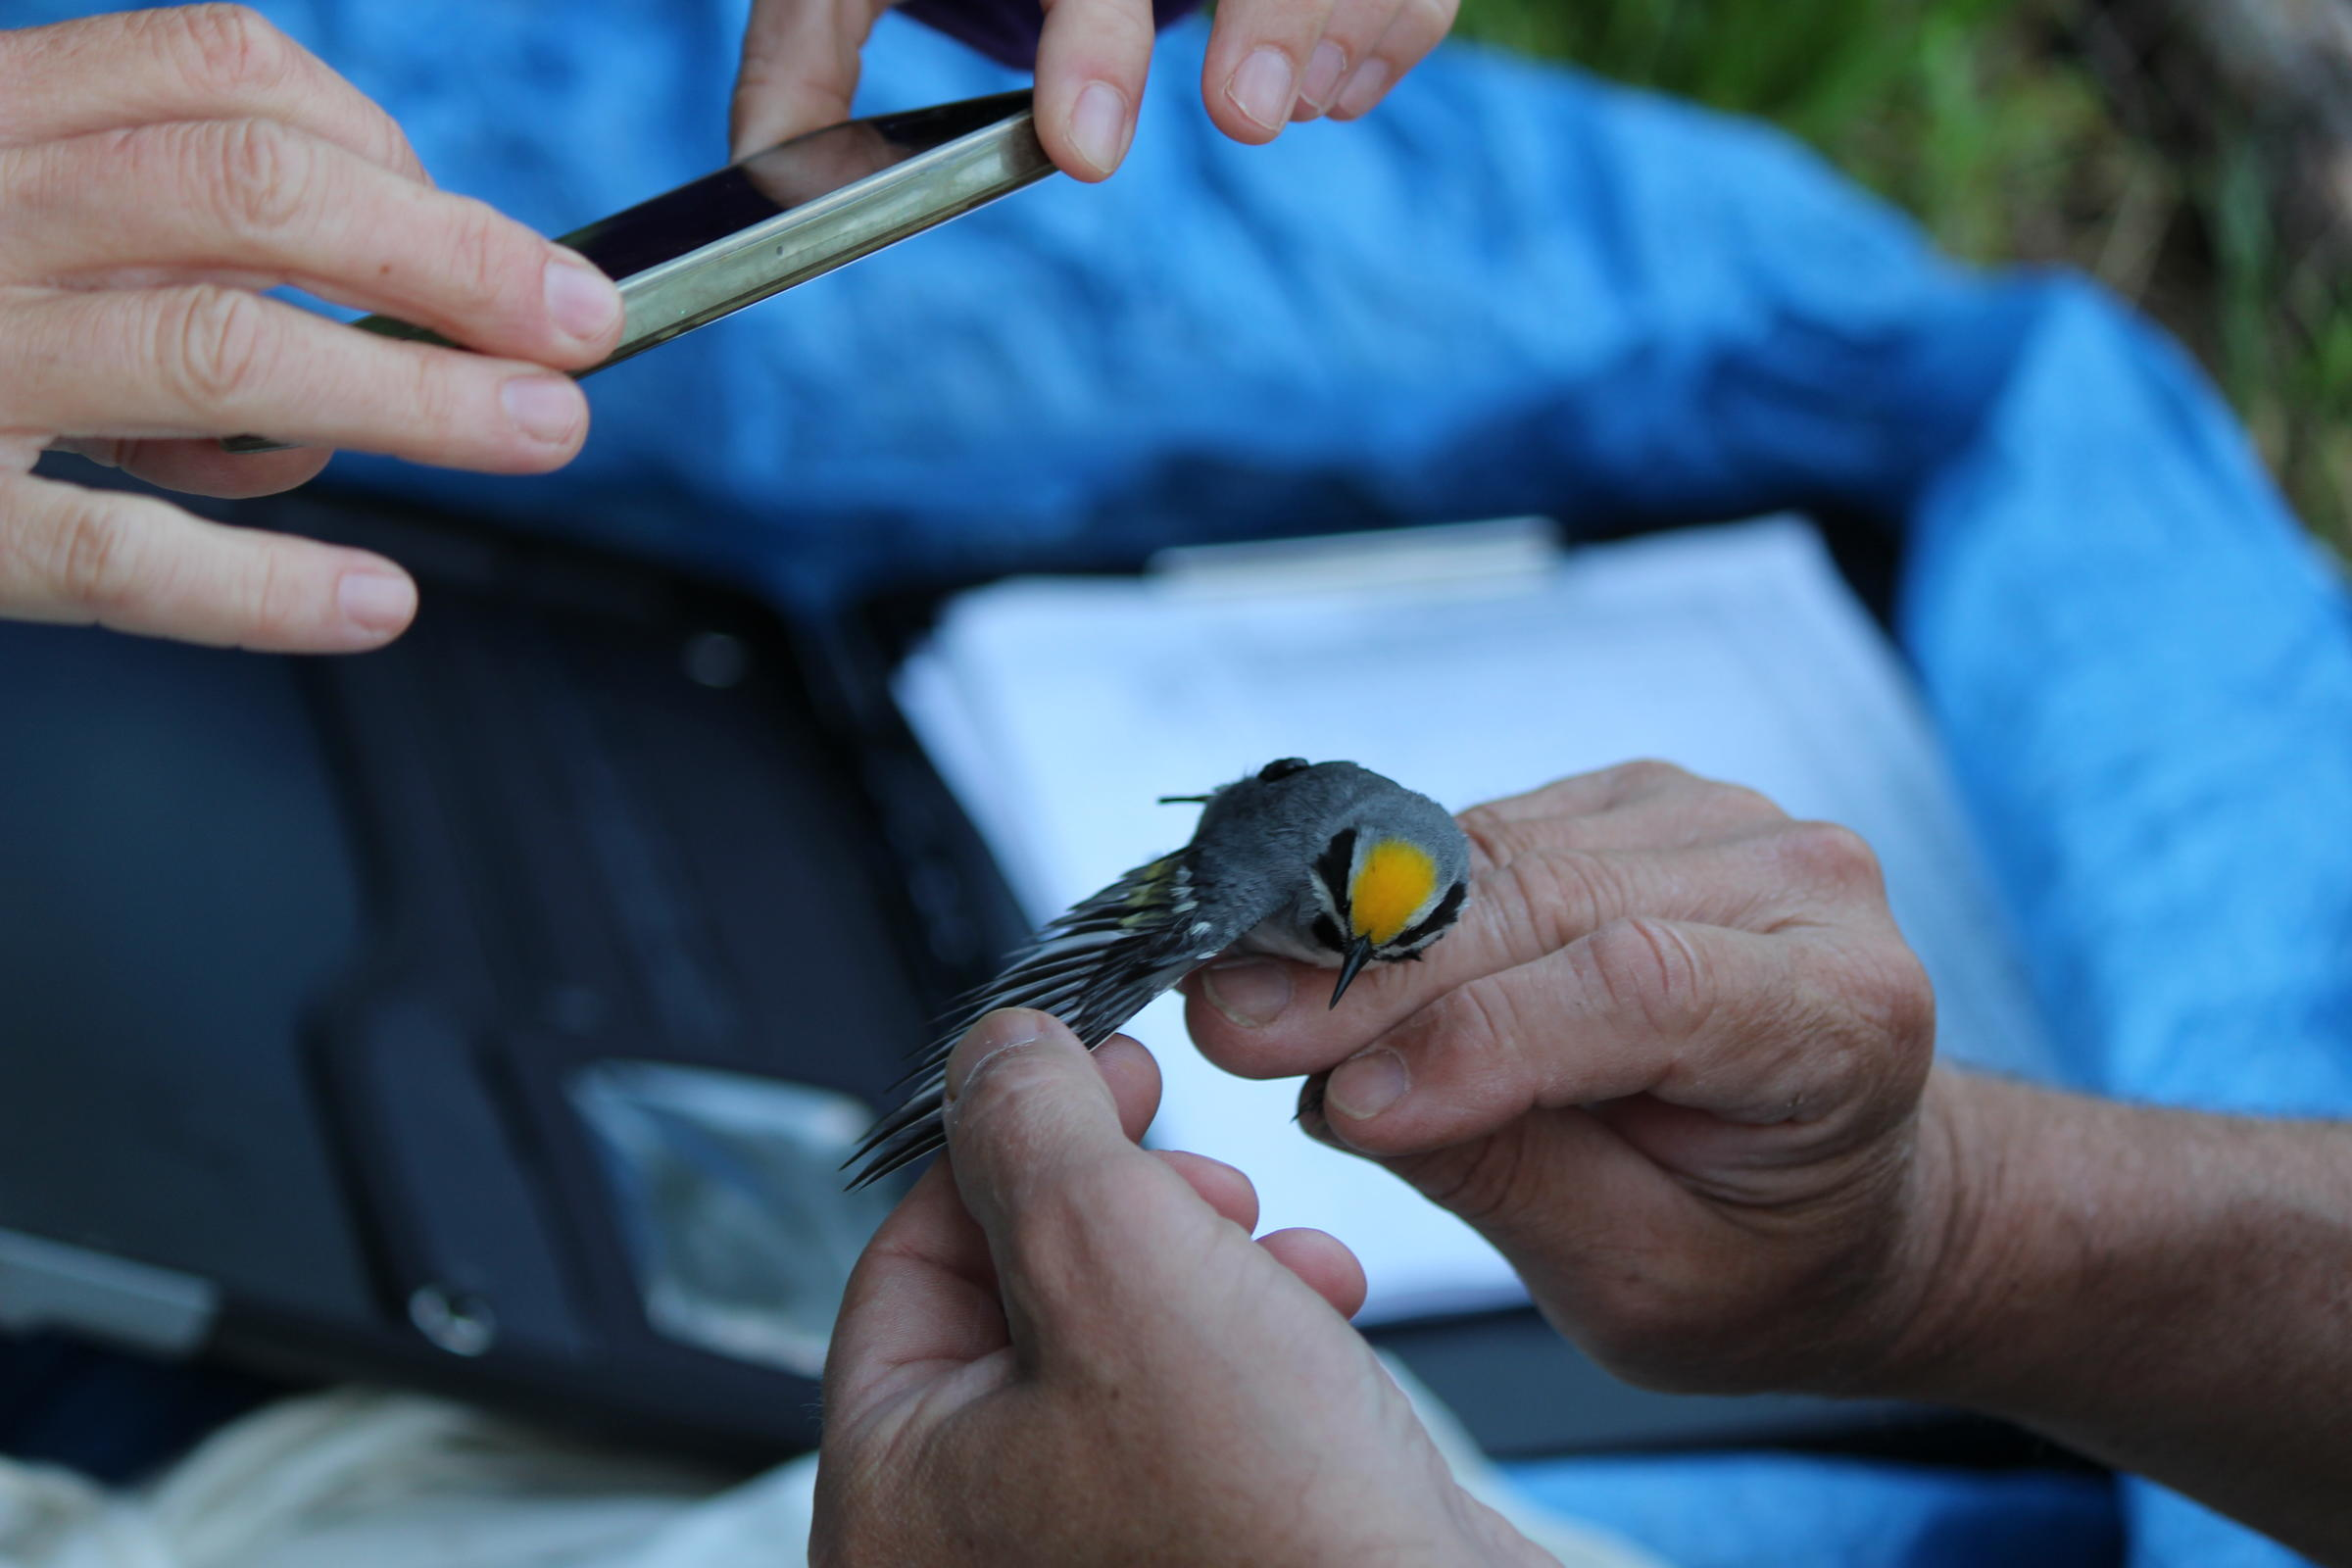 Golden-winged Warbler Geolocator Placement